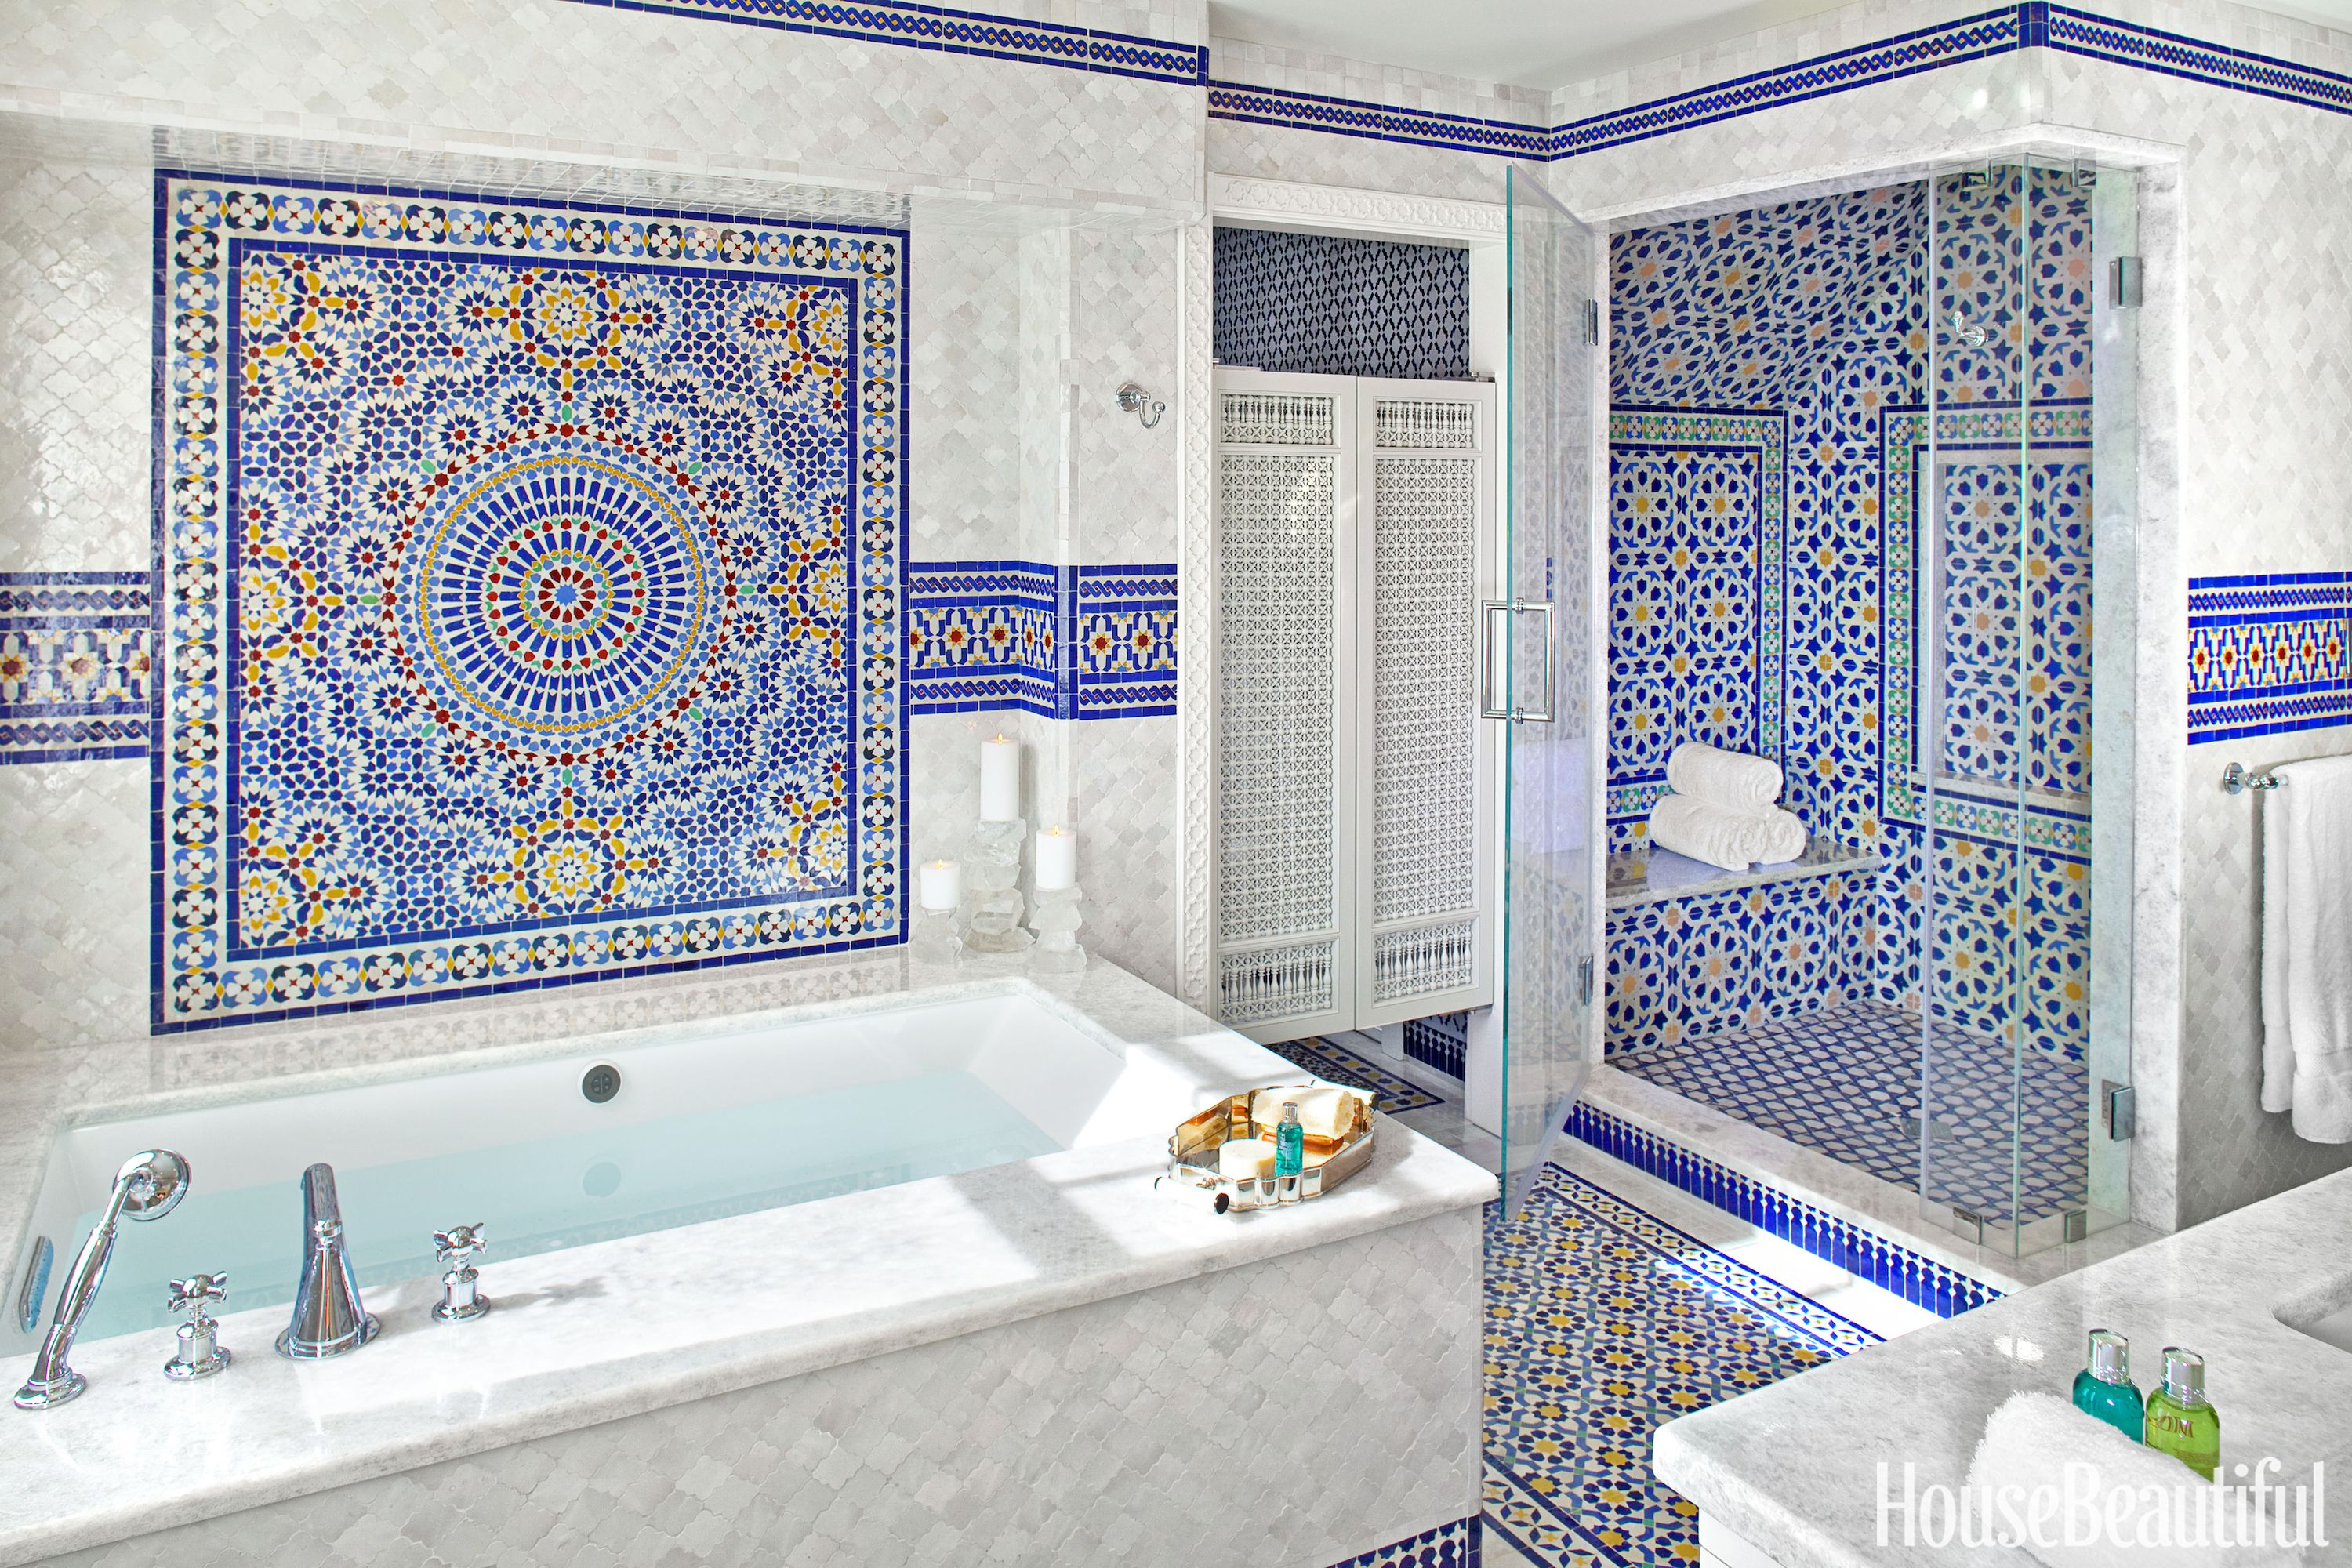 design tiled room ideas walker colorful bathroom tile bathrooms decorate sarah associates